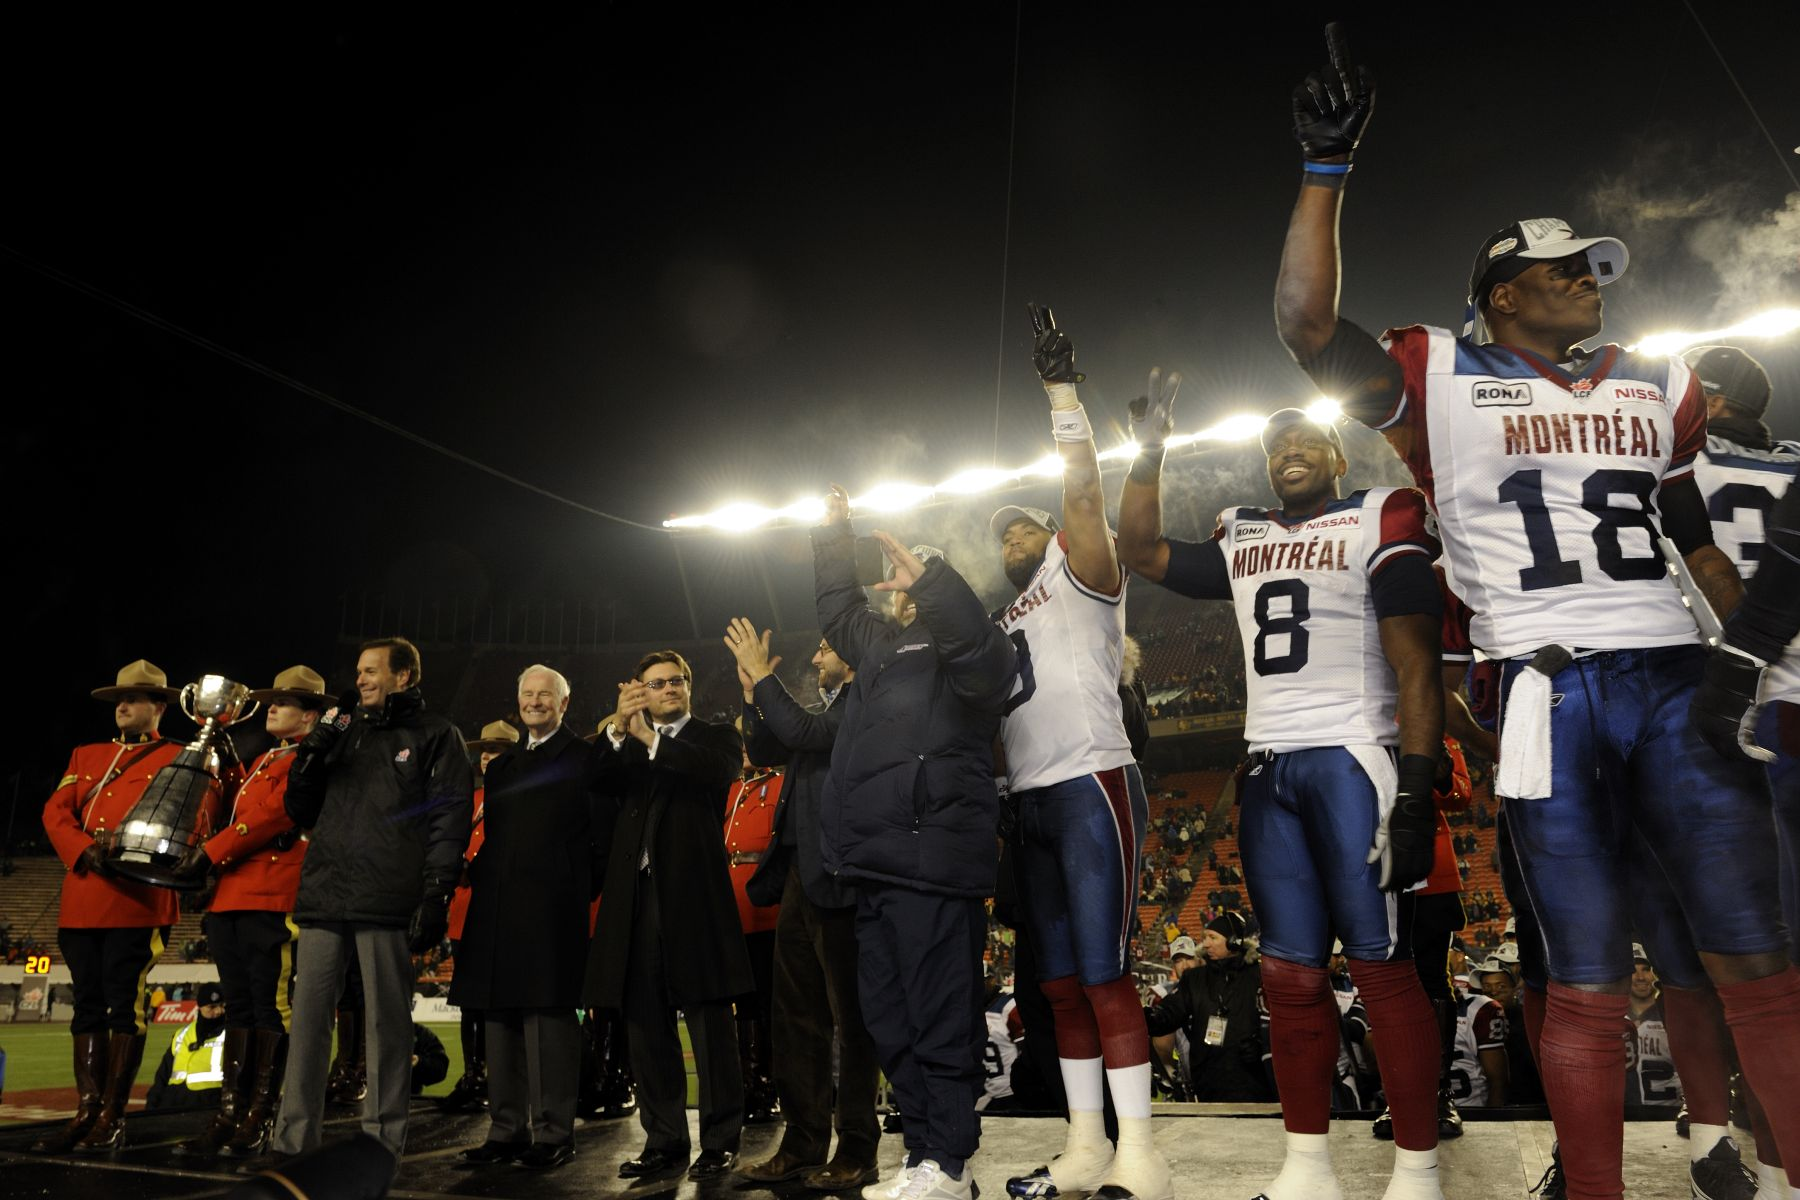 Players from the Montréal Alouettes are celebrating their victory.